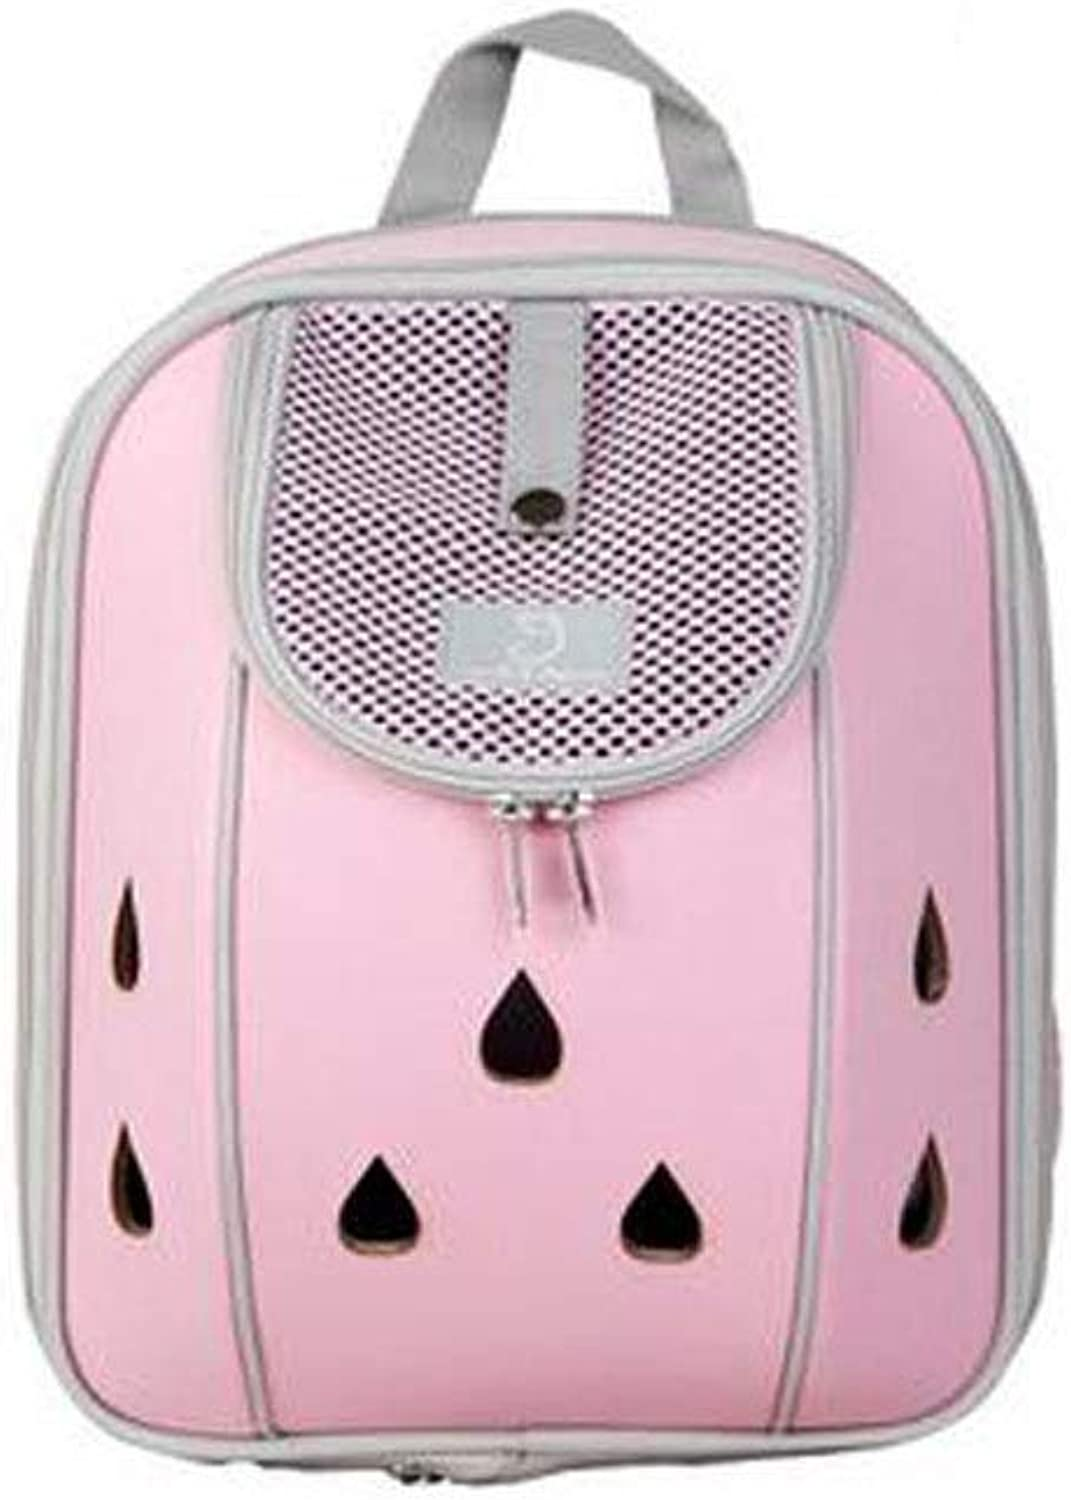 Chenjinxiang01 Lightweight Pet Bag, Pet Carrier Suitable For Outdoor Travel, Leisure, Pet Bag Teddy, Cat Out Bag,Black, bluee, Pink (color   Pink)